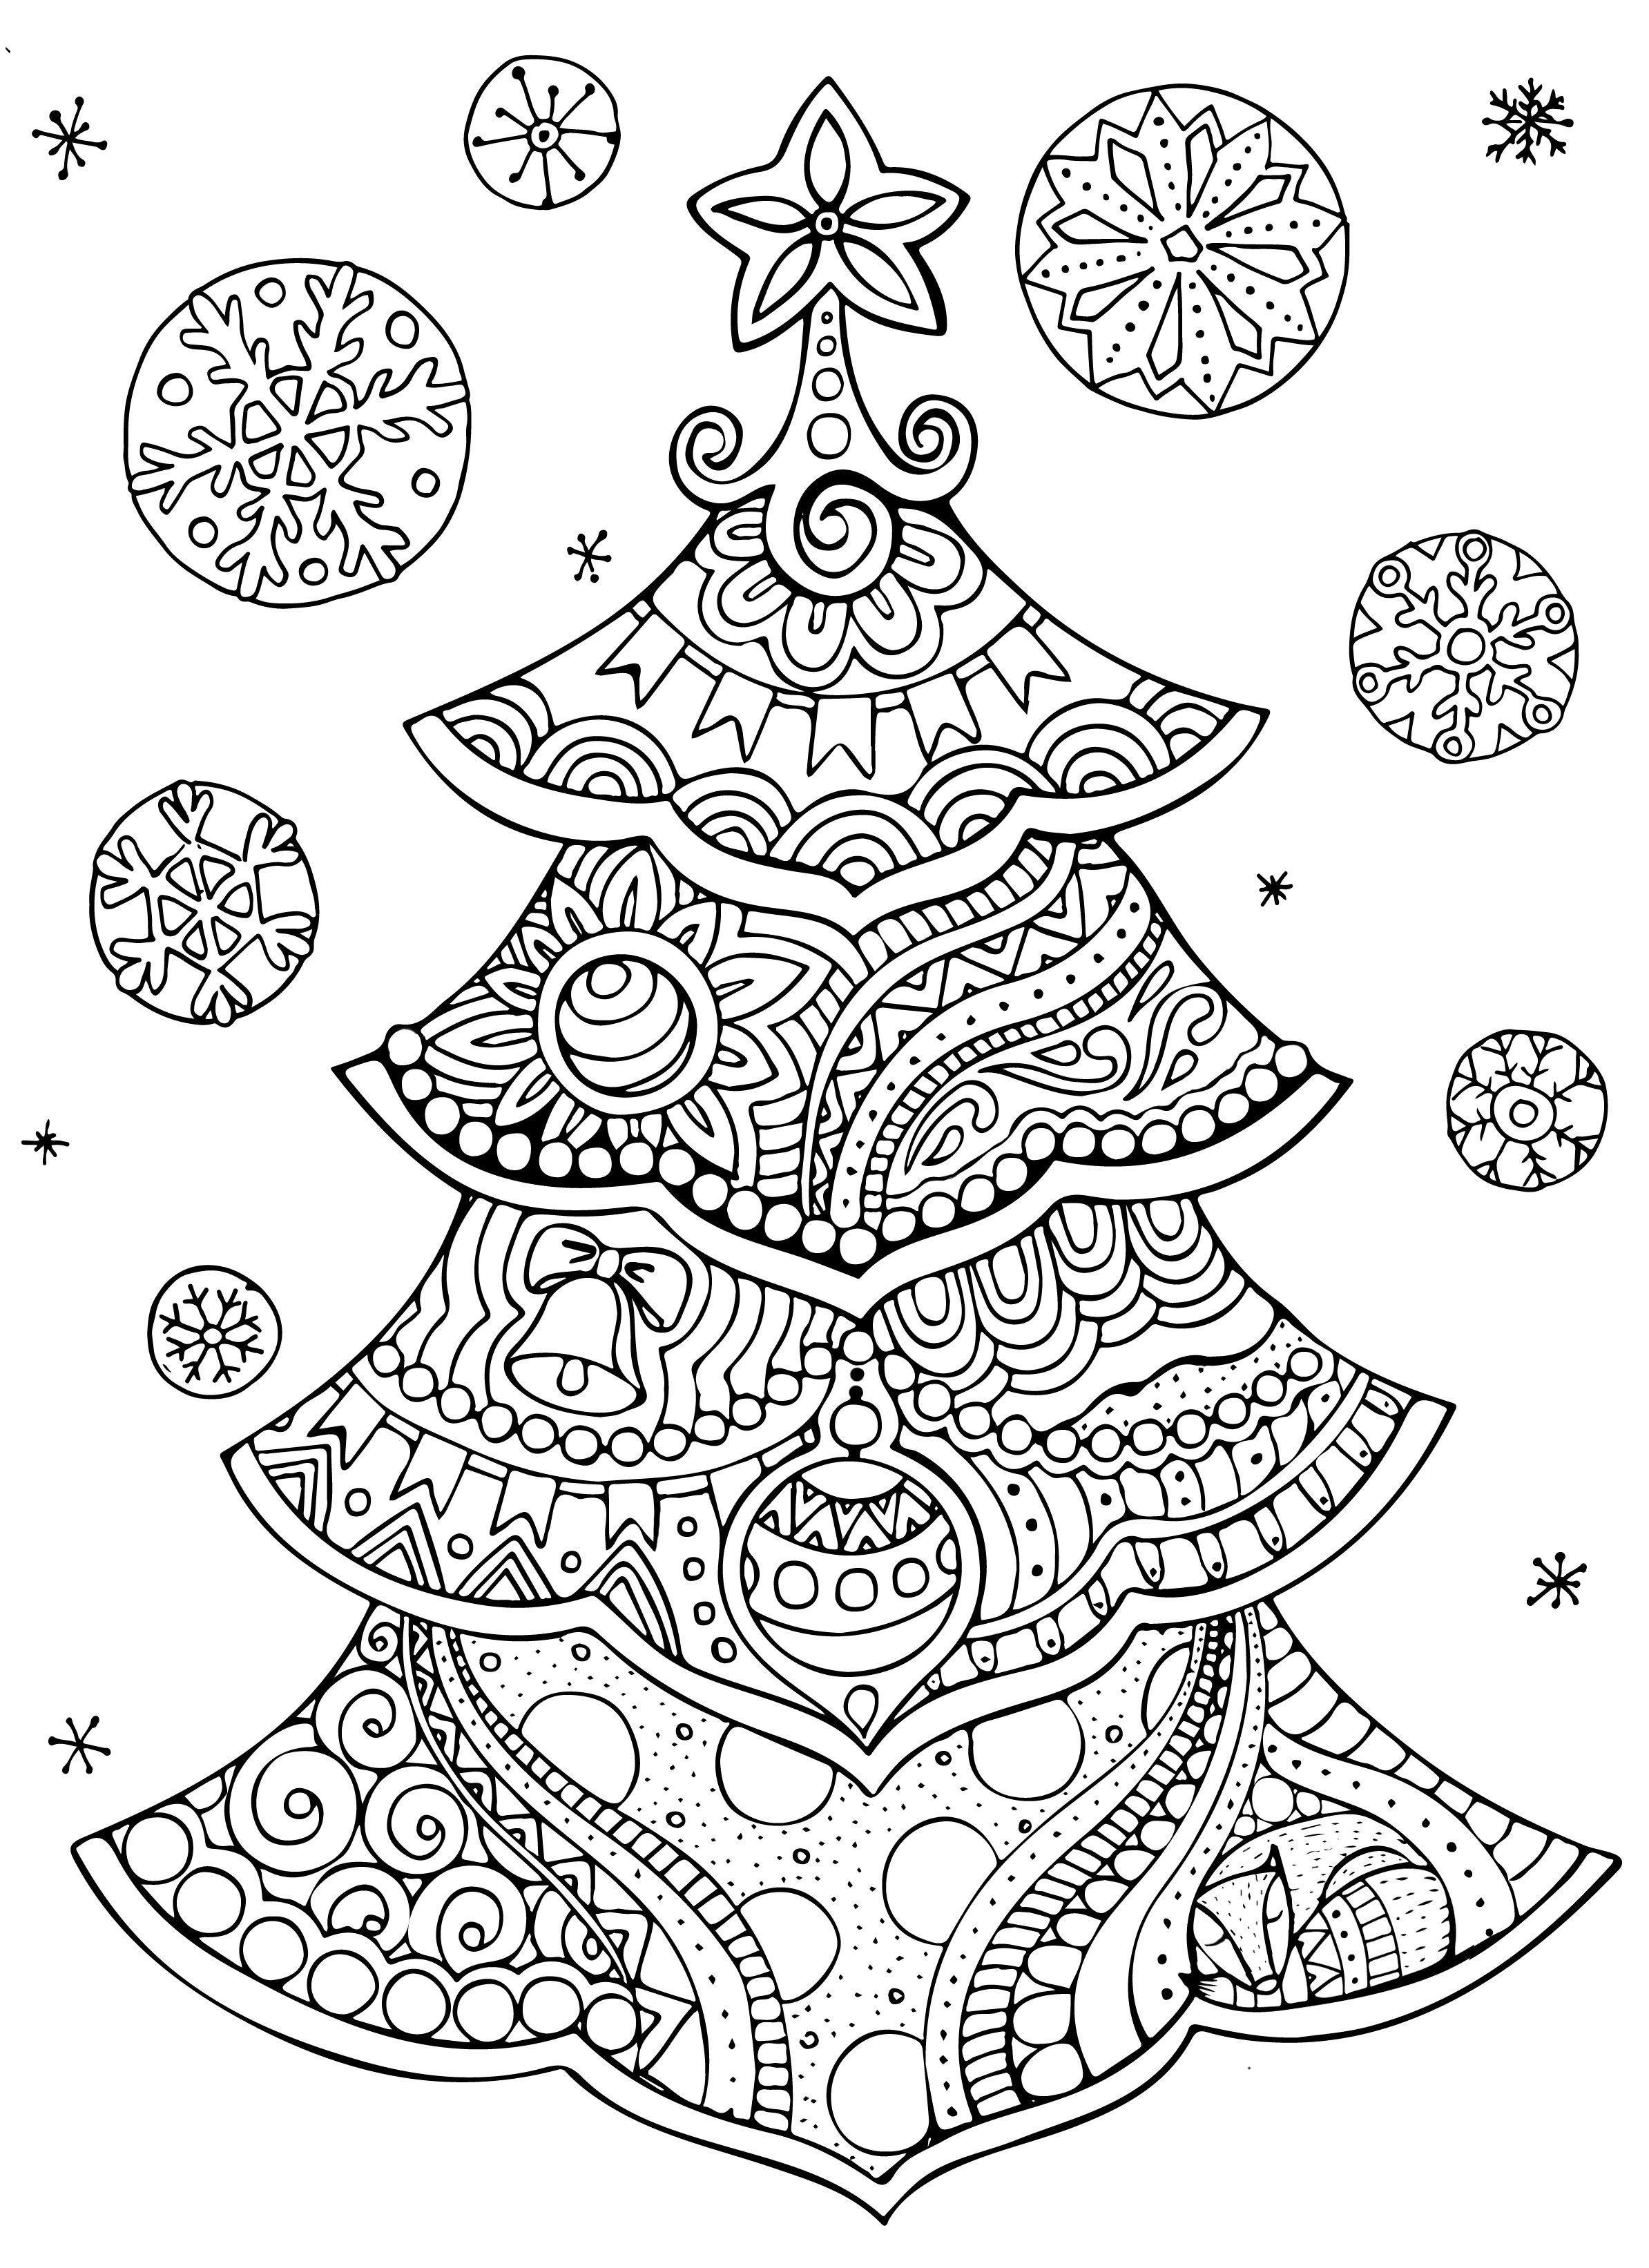 0d3b3a5b 5f71 4e66 900f 8e4641d85928 Jpg 2388 3285 Printable Christmas Coloring Pages Free Christmas Coloring Pages Christmas Coloring Pages